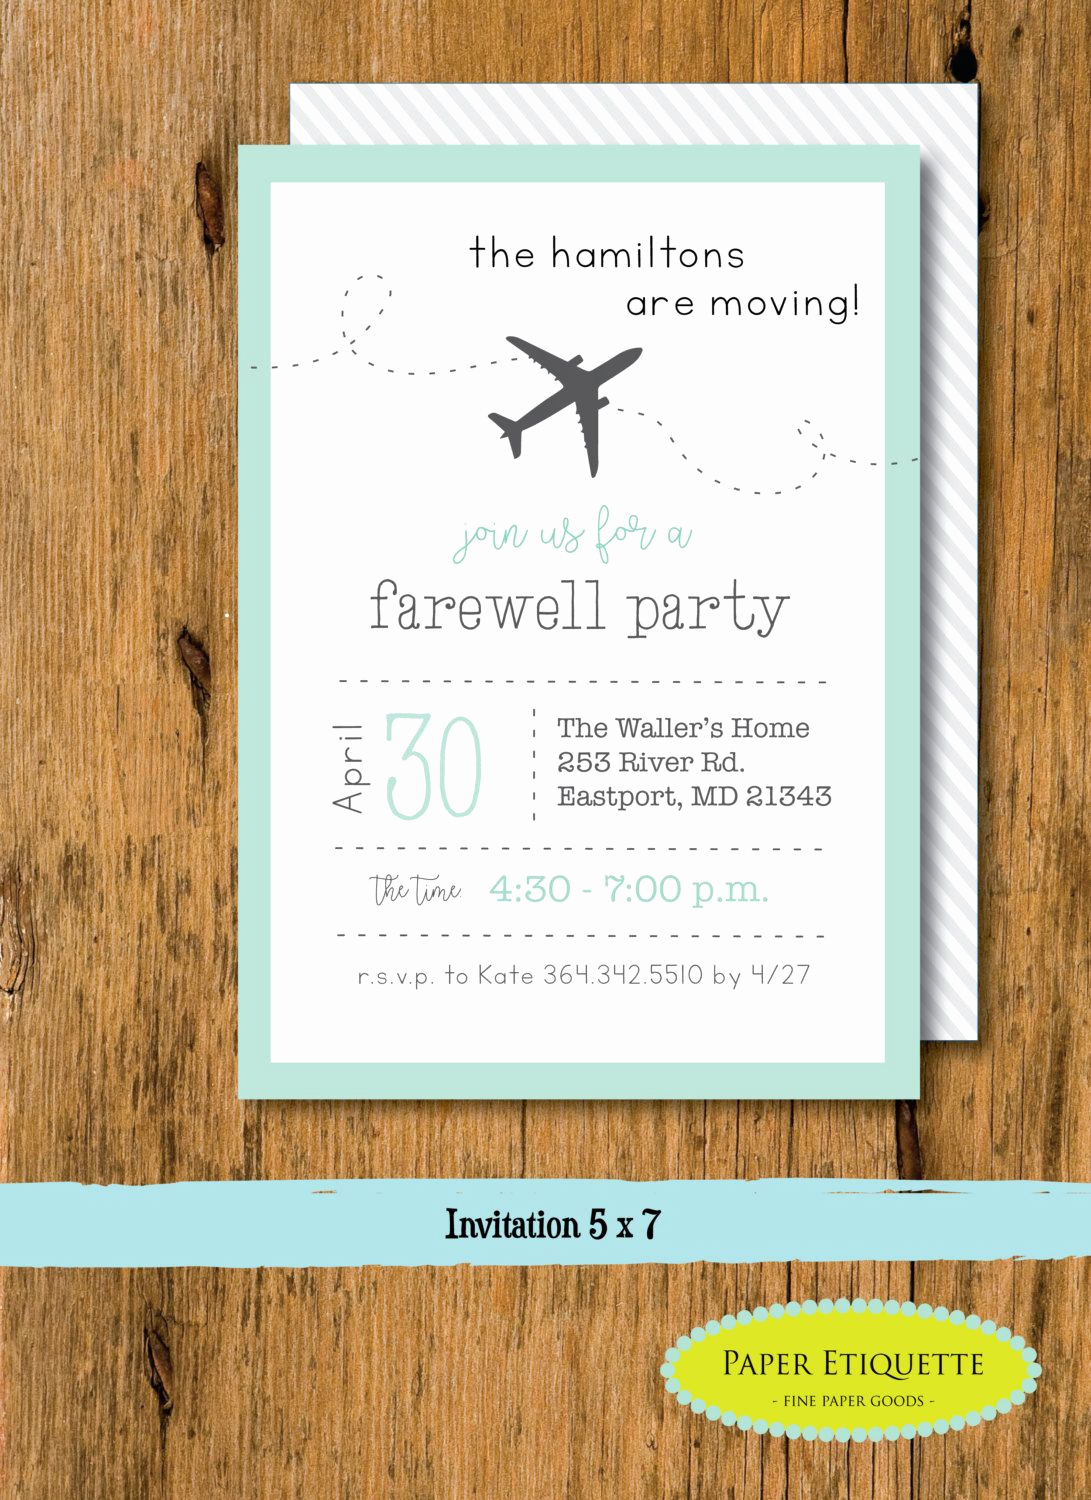 Going Away Party Invitation Awesome Going Away Party Moving Party Invitation Beer Packing